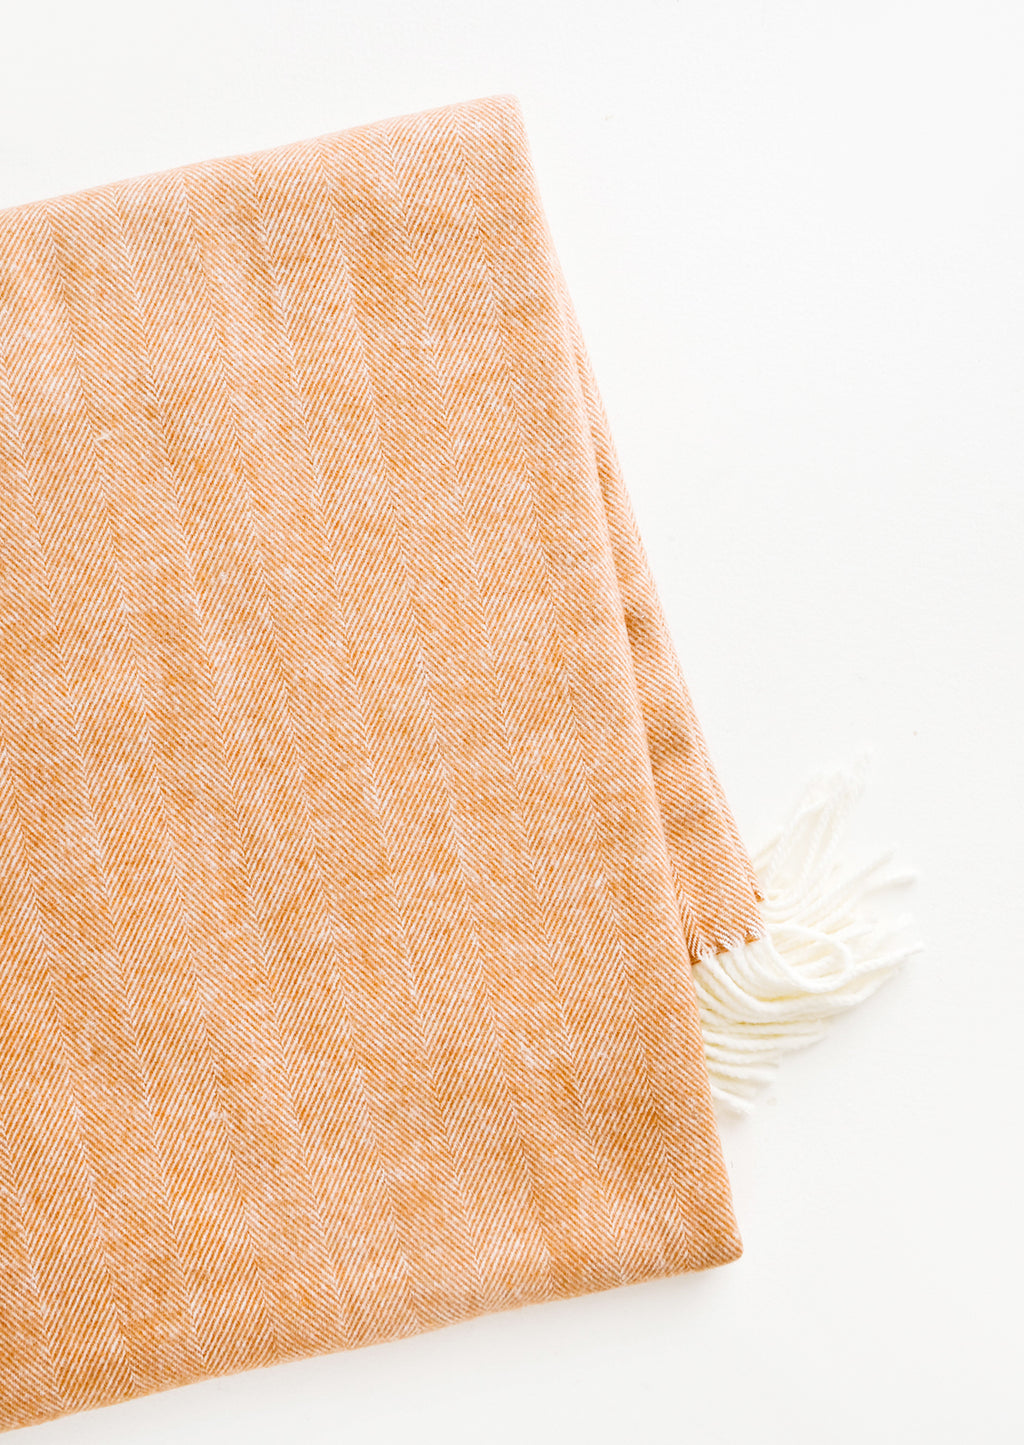 Copper: Soft blanket in copper colored herringbone weave. Ivory tassel trim at ends.